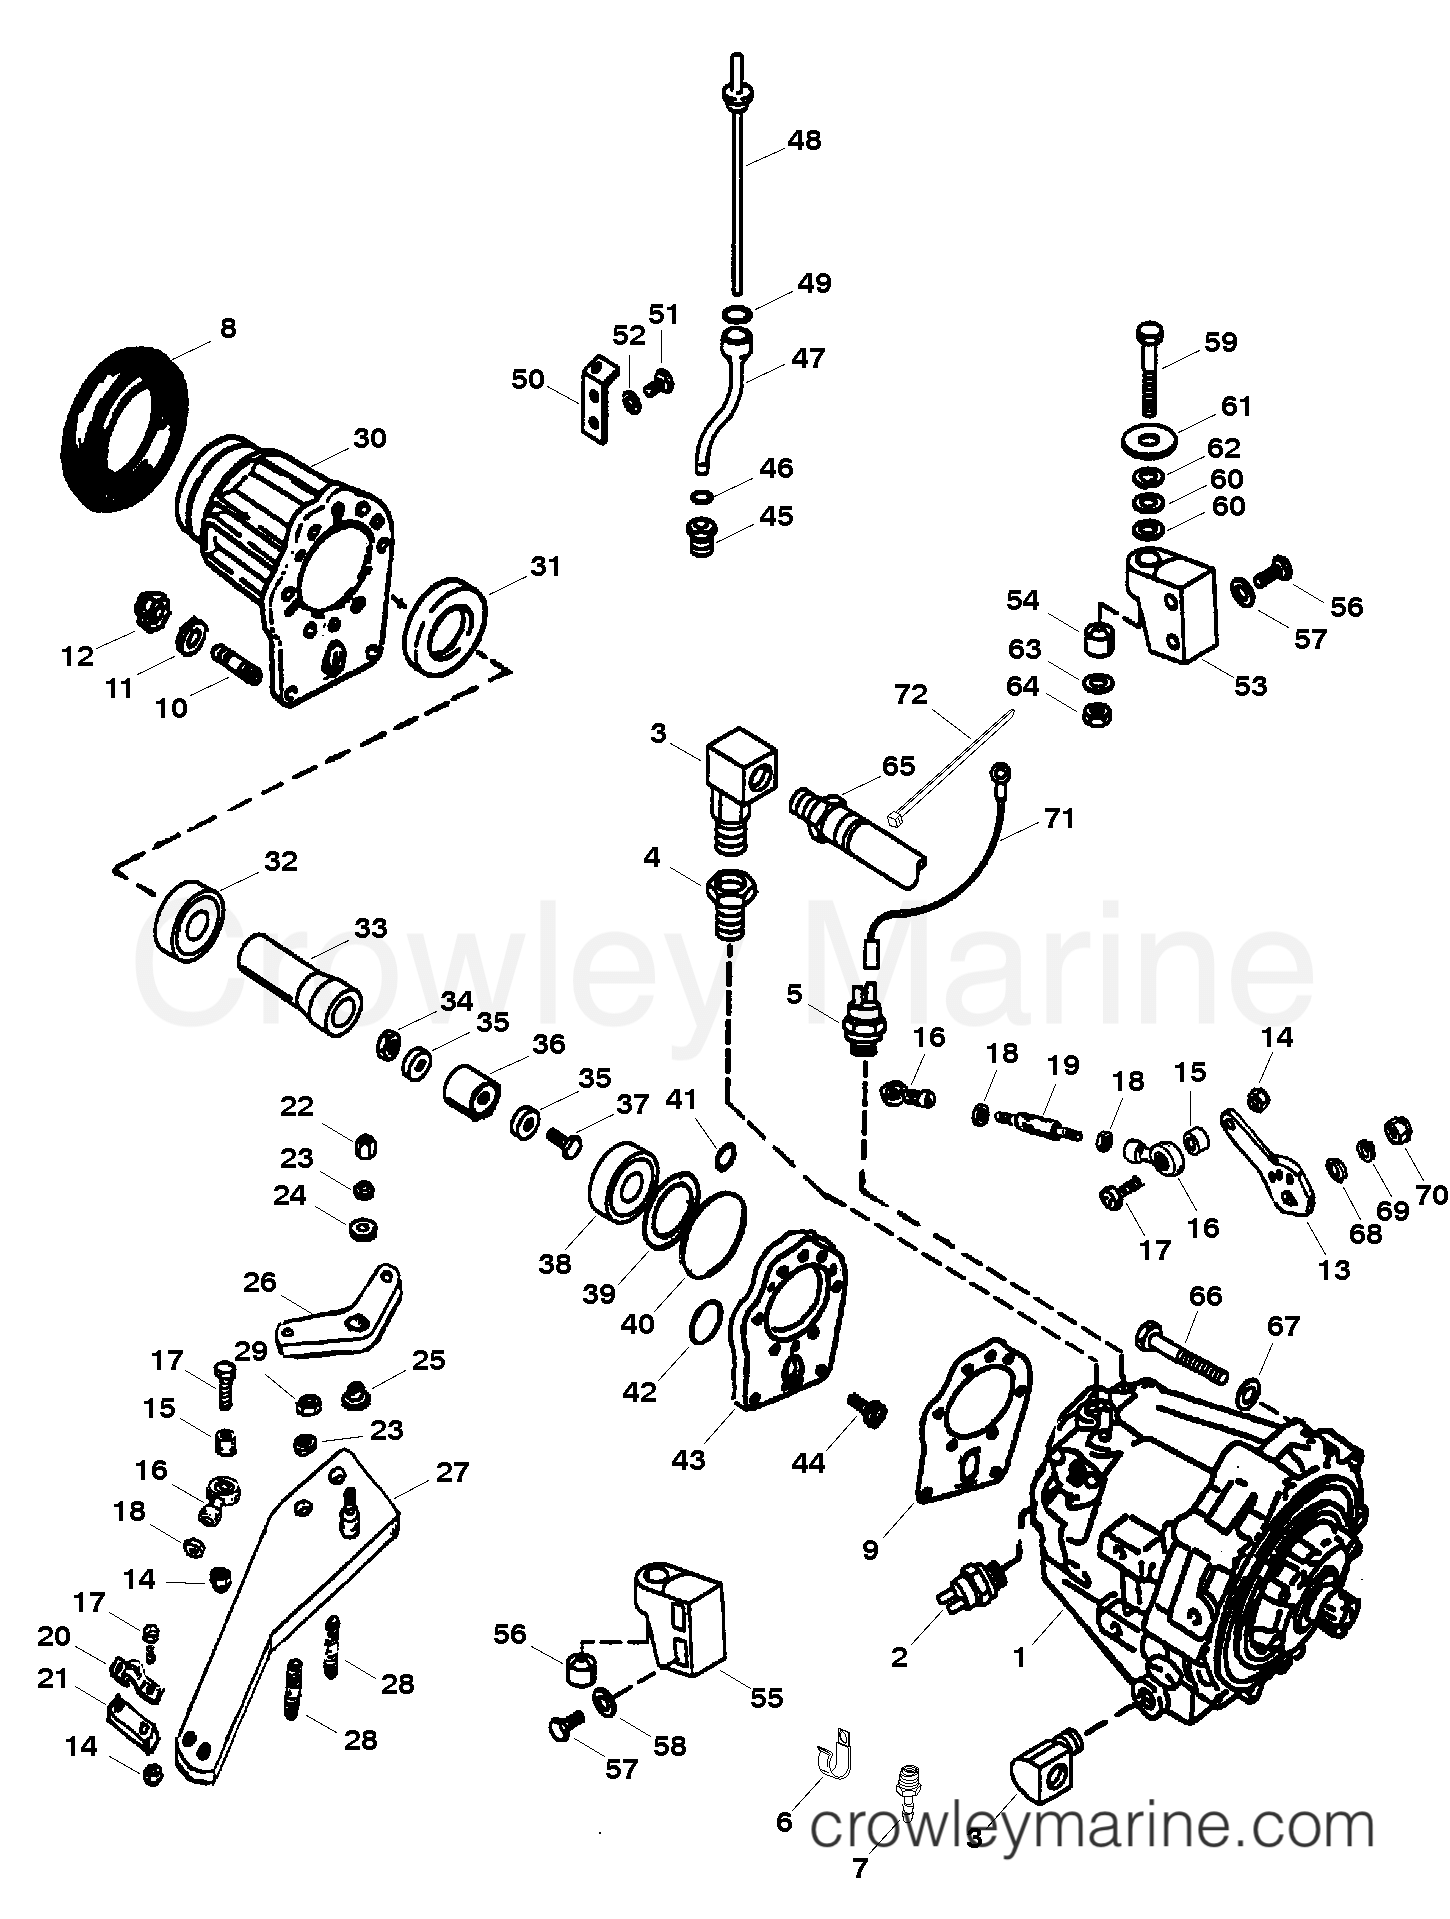 1997 Mercruiser Race Sterndrive 800SC [III/V] - 48008907H TRANSMSISSION AND COMPONENTS - VI DRIVE (BRAVO) (PG 2 0F 2) section